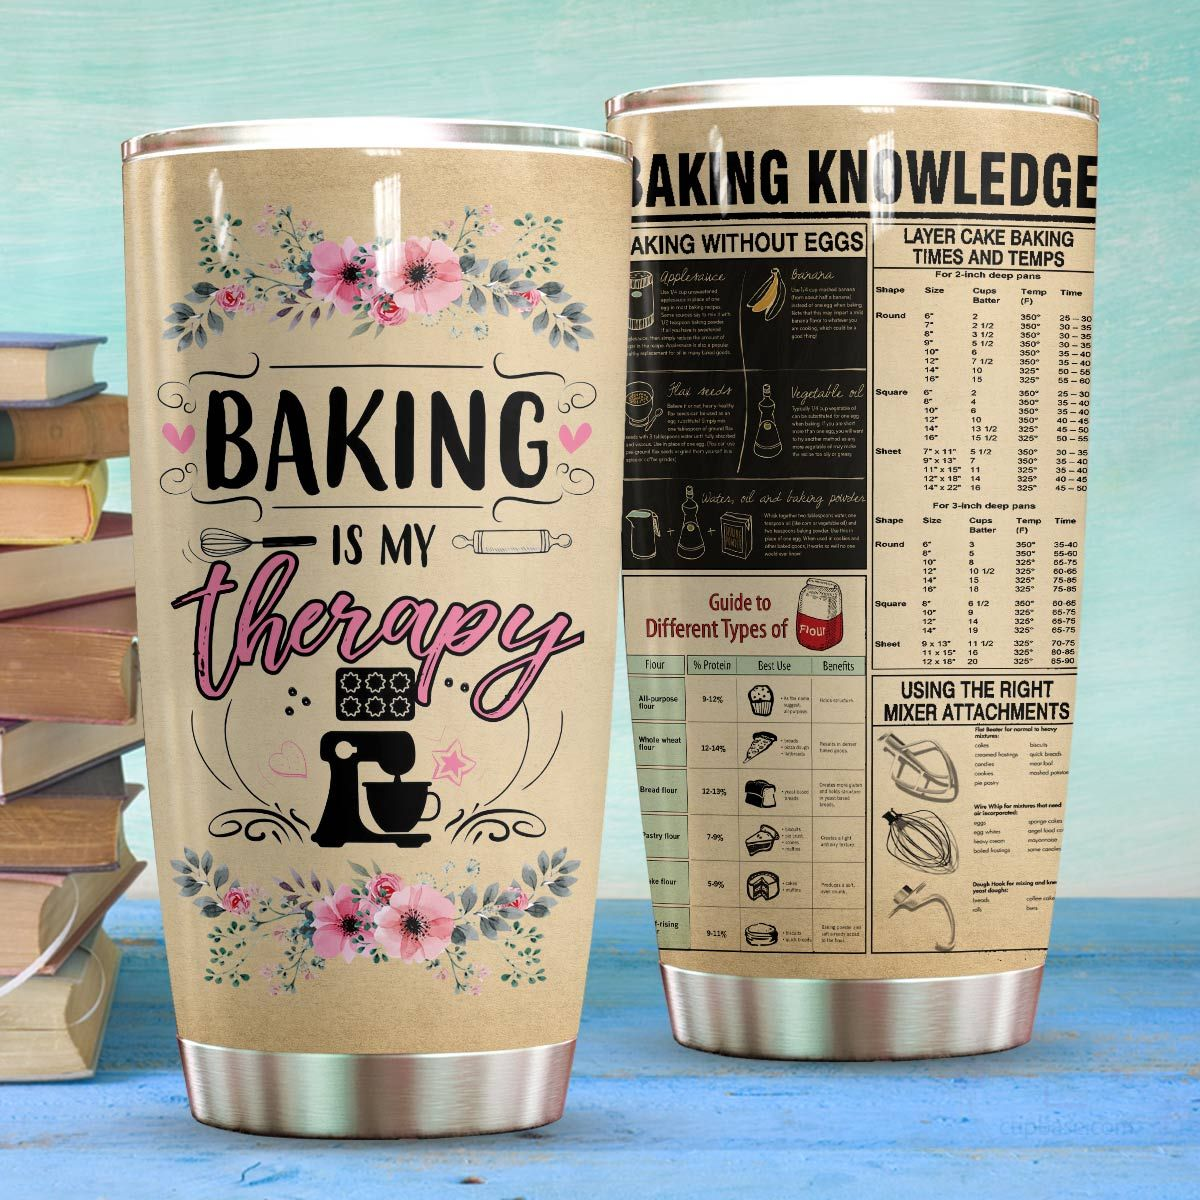 Baking is my therapy baking knowledge full over print tumbler 1